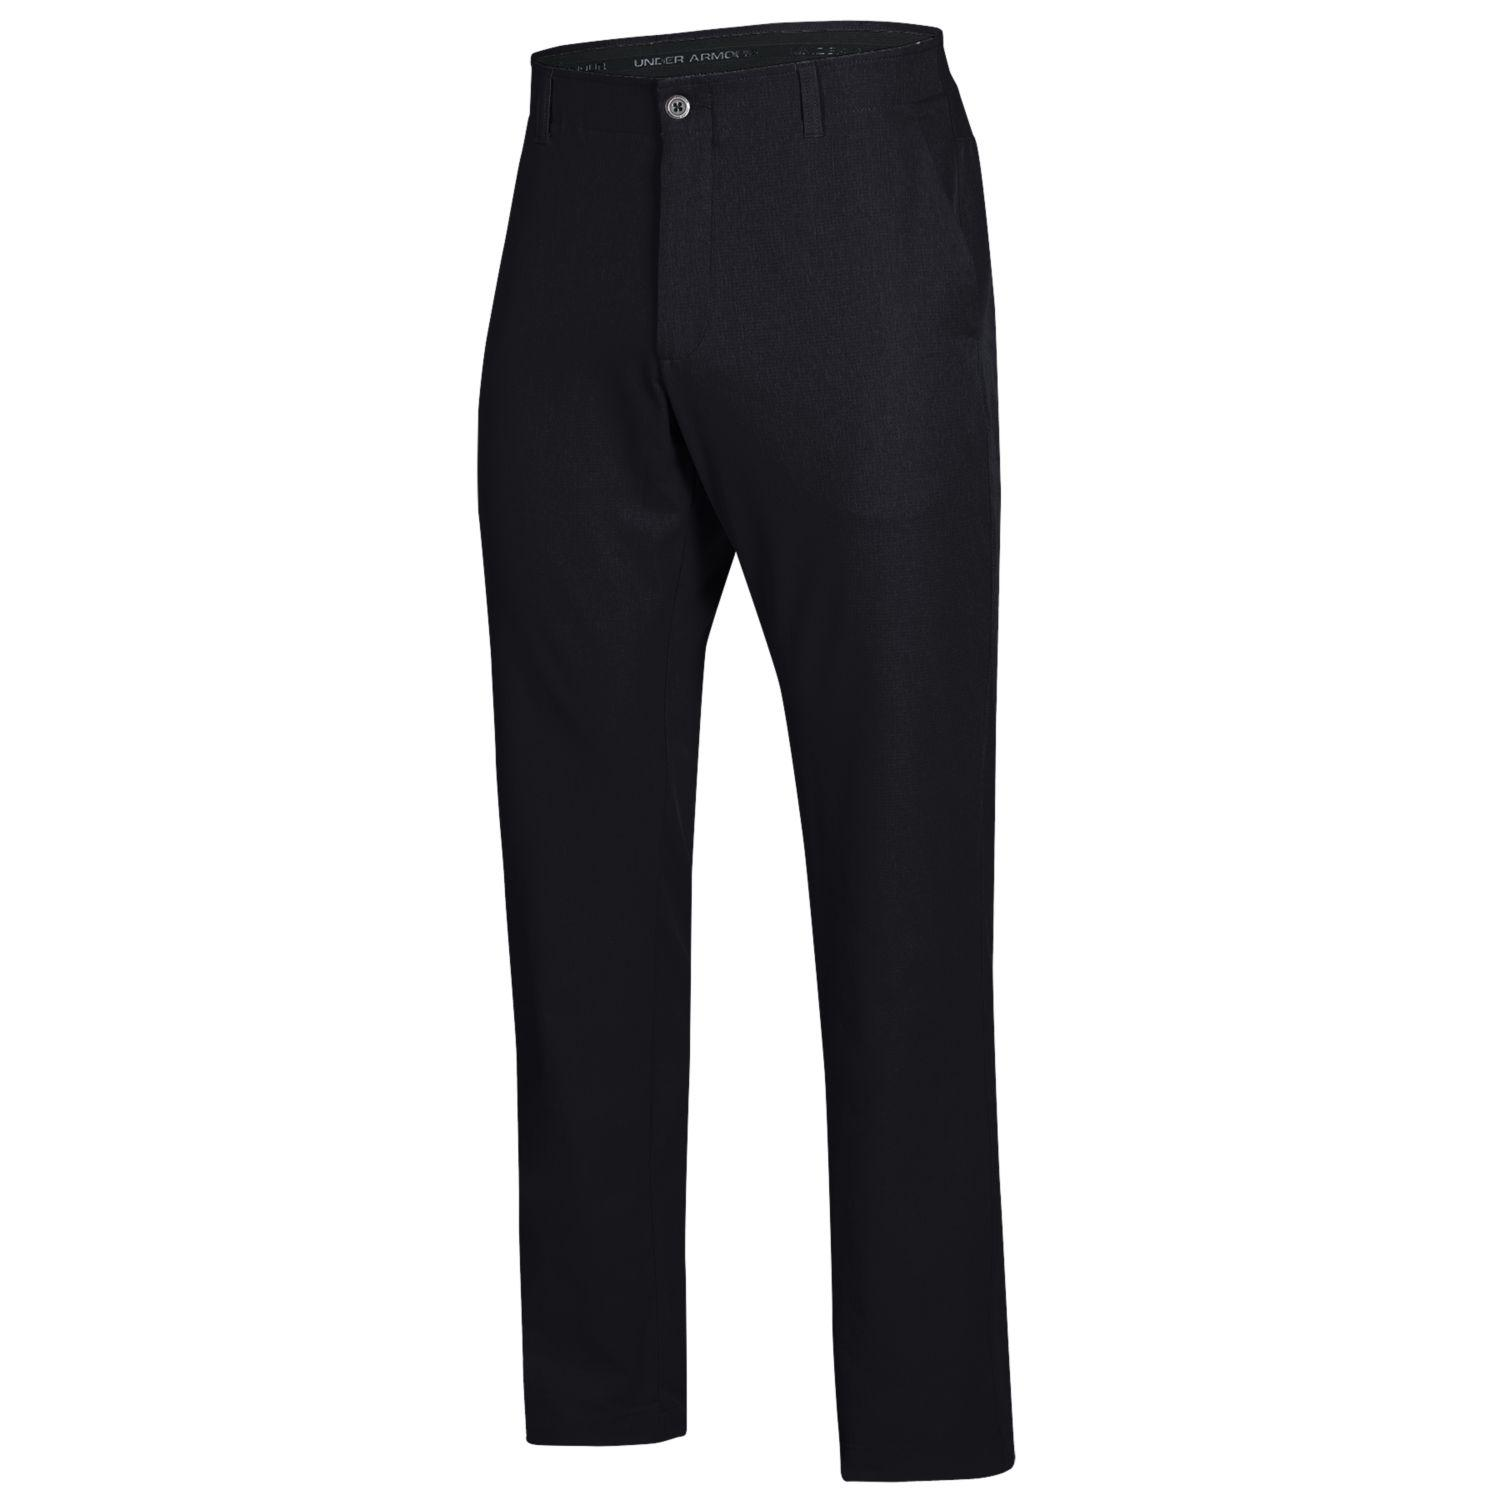 Under Armour Men's 2019 Show Down Vented Black Pant